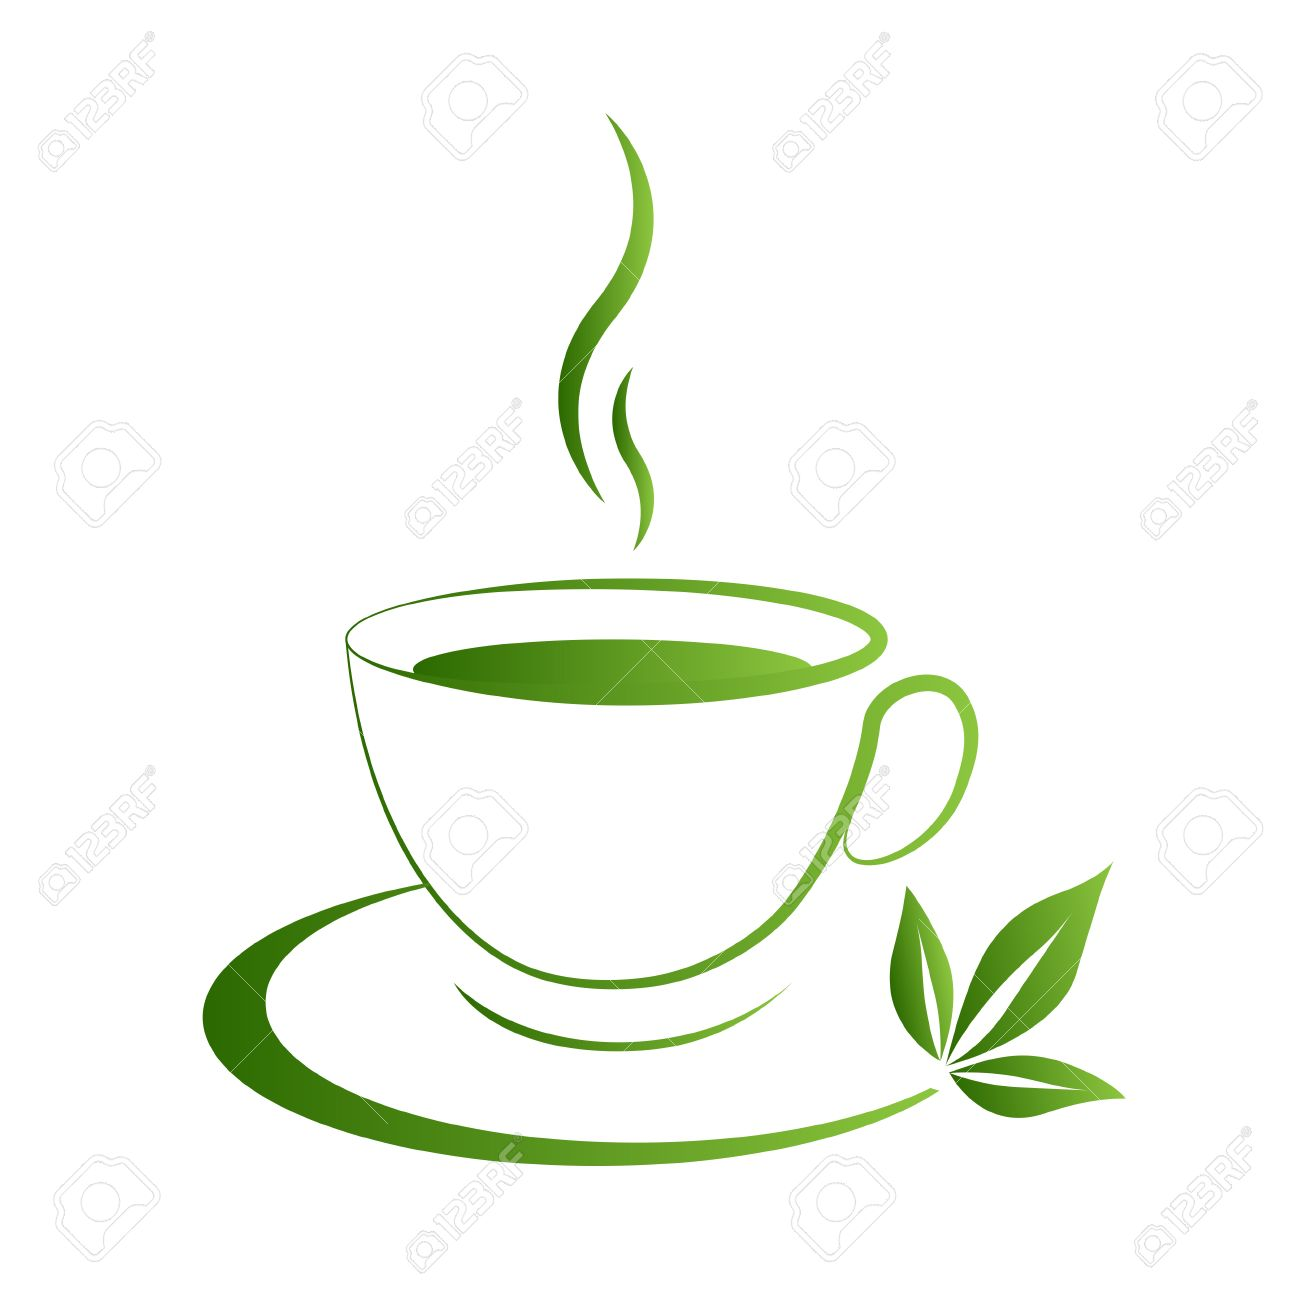 tea cup icon green grad on a white background royalty free cliparts rh 123rf com tea cup vector image tea cup vector png